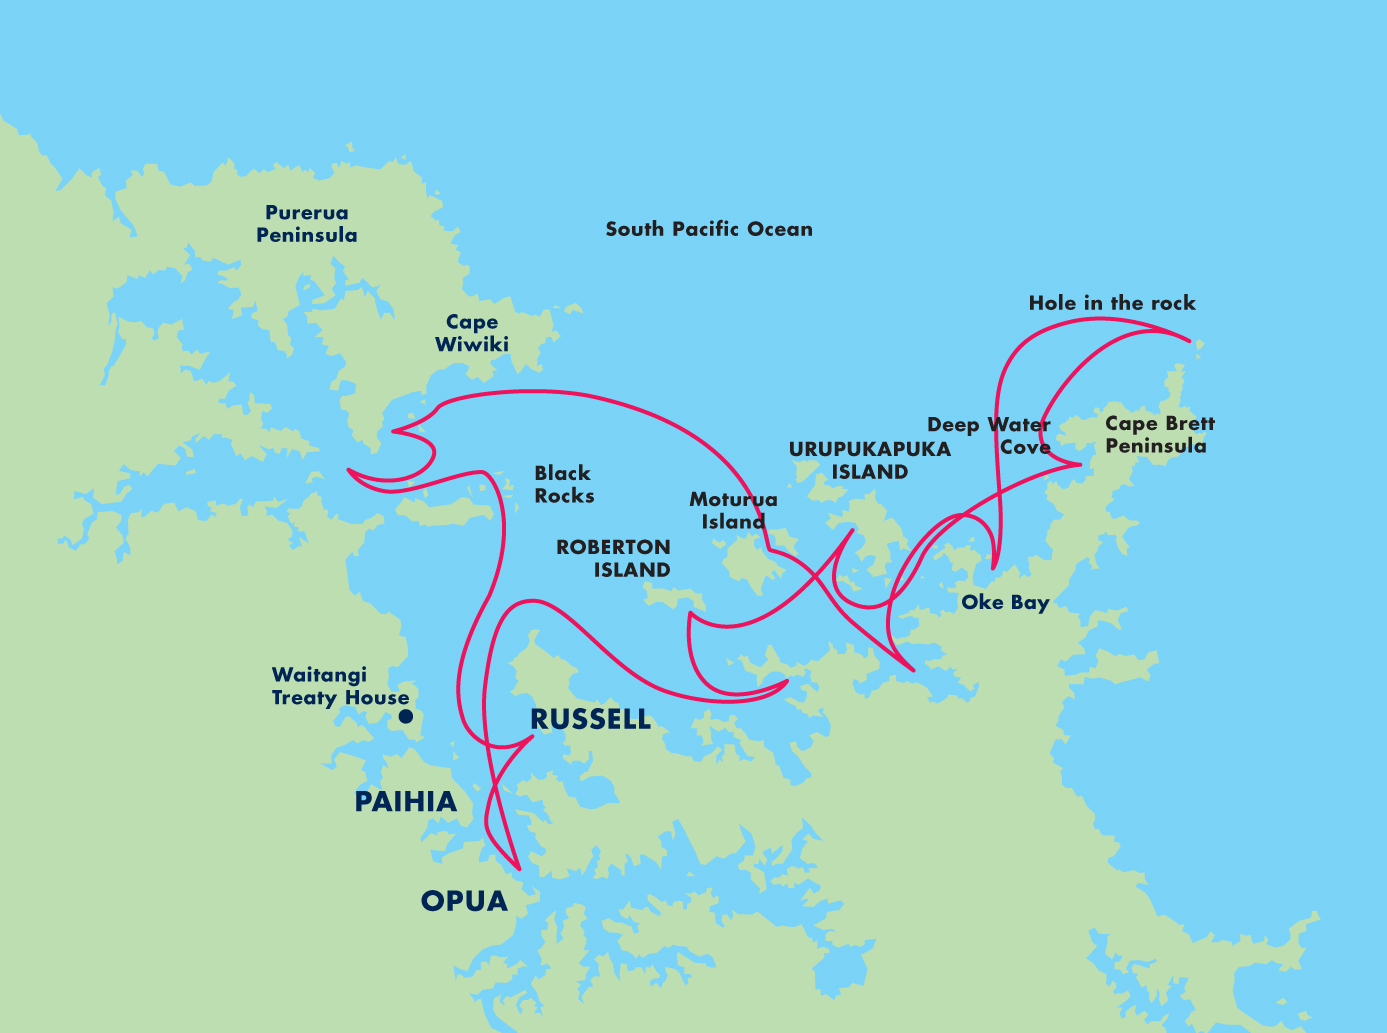 6 Night – Bay of Islands, Luxury Cruise | Luxury Travel in ... on map of rhode island, map of guatemala, map of philippines, map of new brunswick, map of la ceiba, map of queensland, map of cancun, map of bali, map of st. martin, map of casco bay, map of put in bay ohio attractions, map of sandy bay, map of rajasthan, map of home, map of bay lake, map of sao tome and principe, map of san francisco bay area, map of utila island, map of st. john, map of tobago,